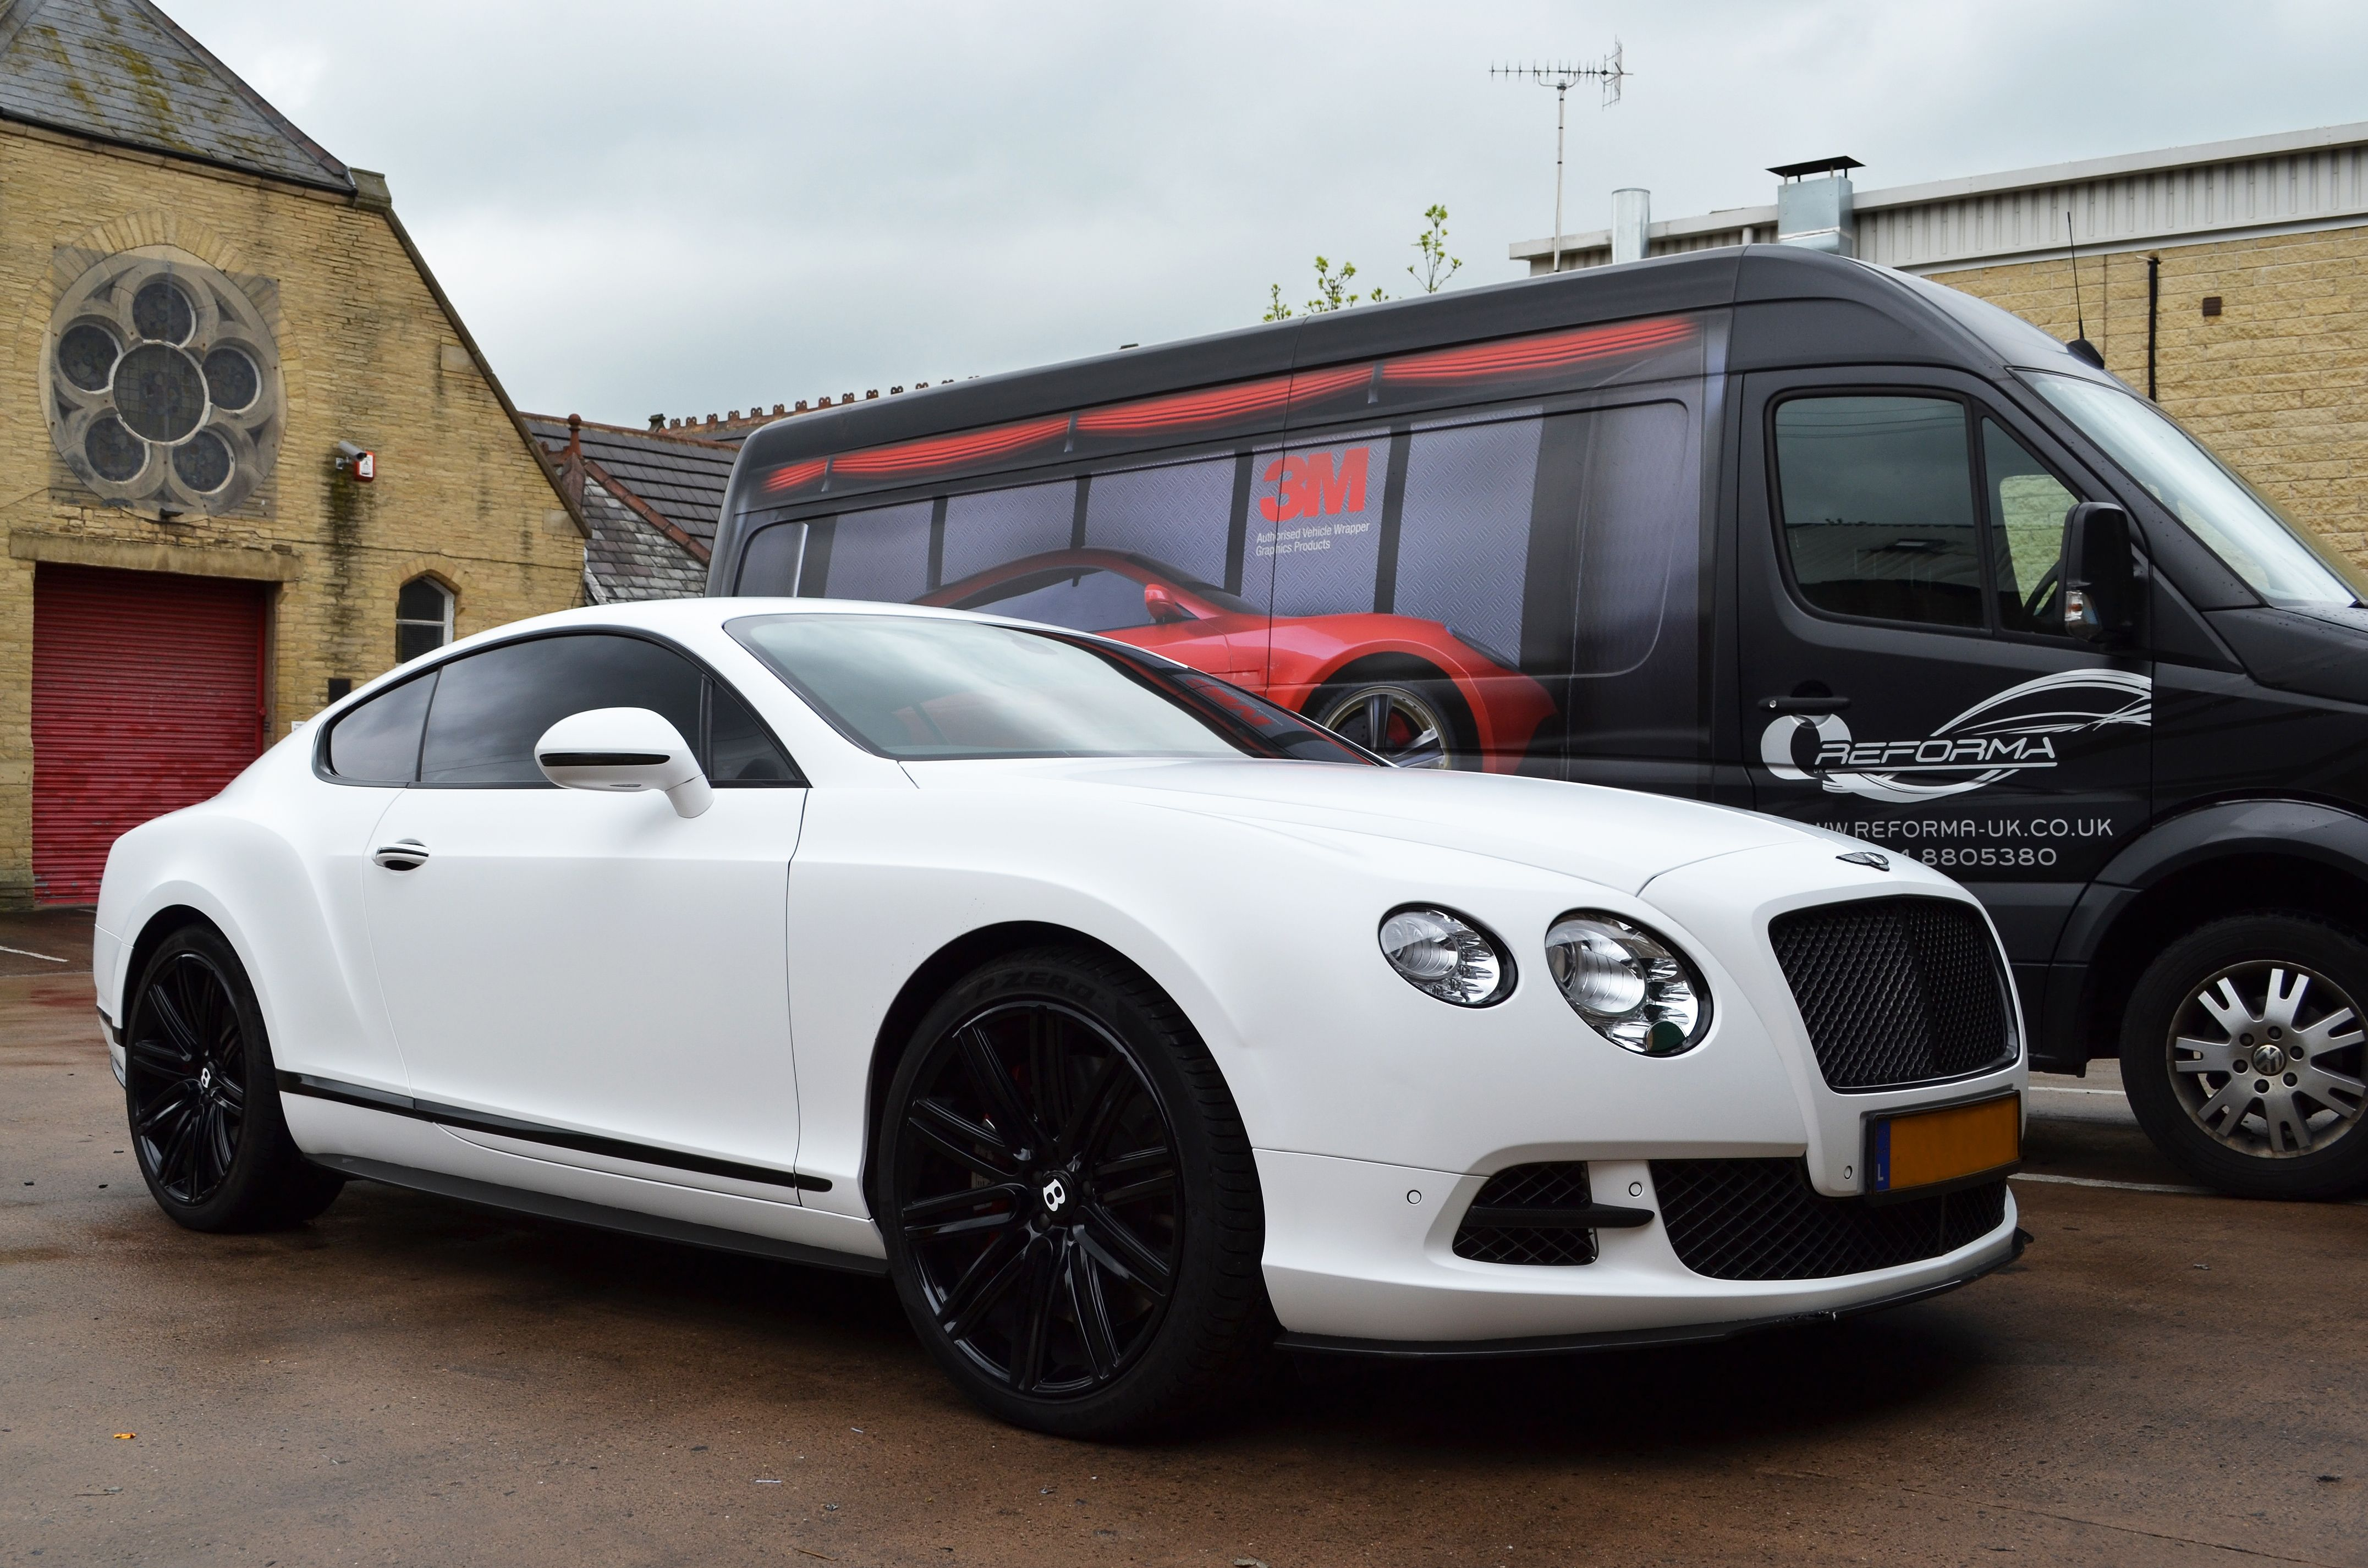 photos vegas bentley view royal continental nv carriage llc price gt cpe additional inventory las